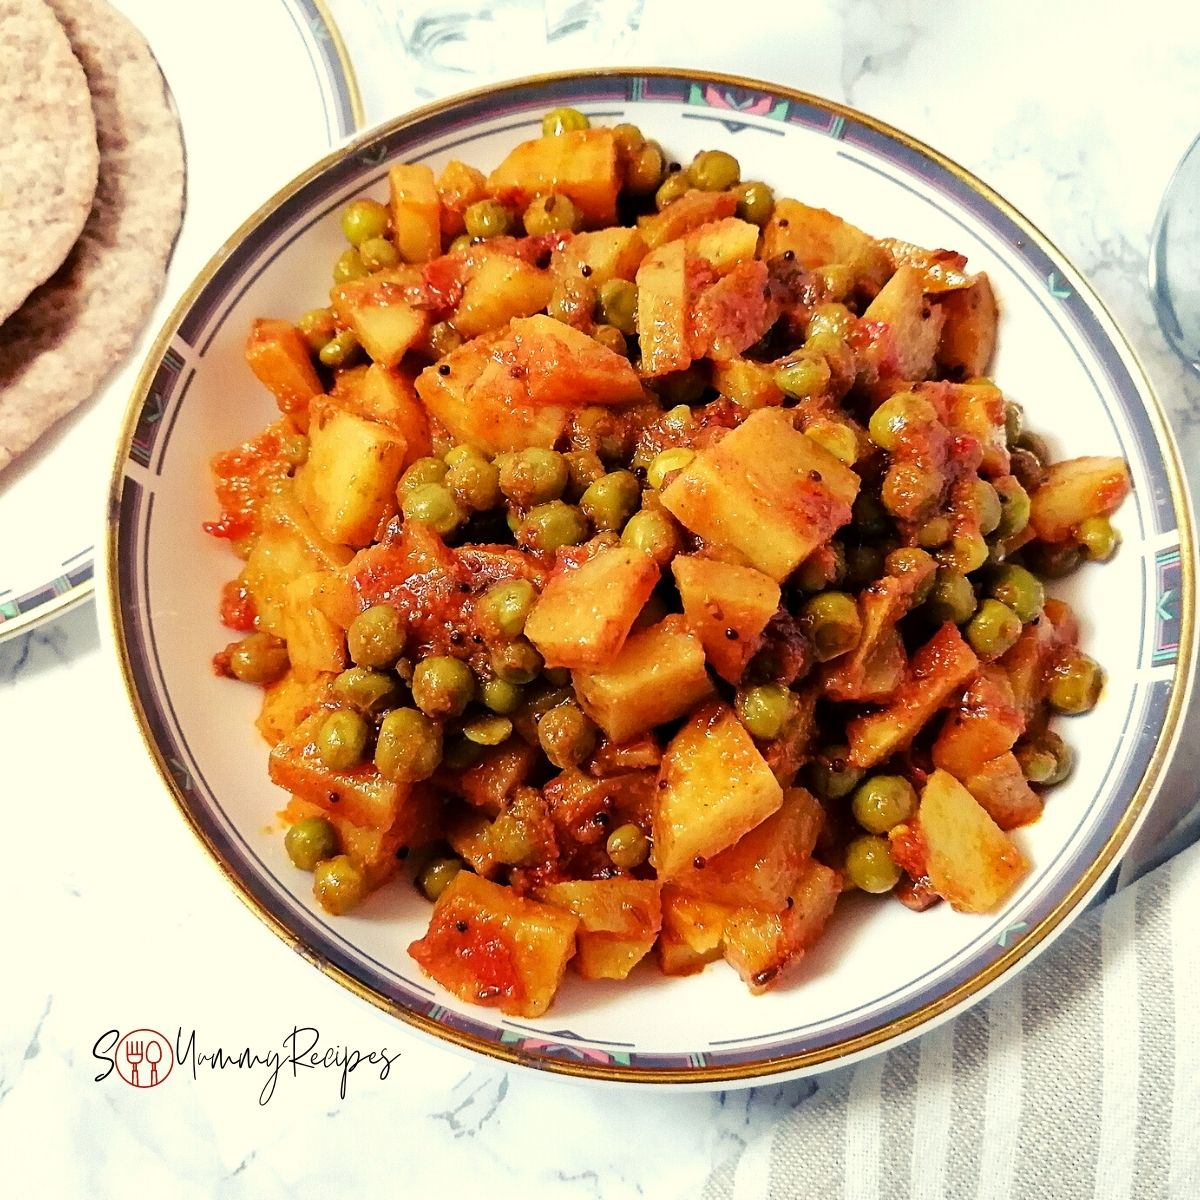 Aloo Matar - the Pakistani potato and green peas curry in a round dish